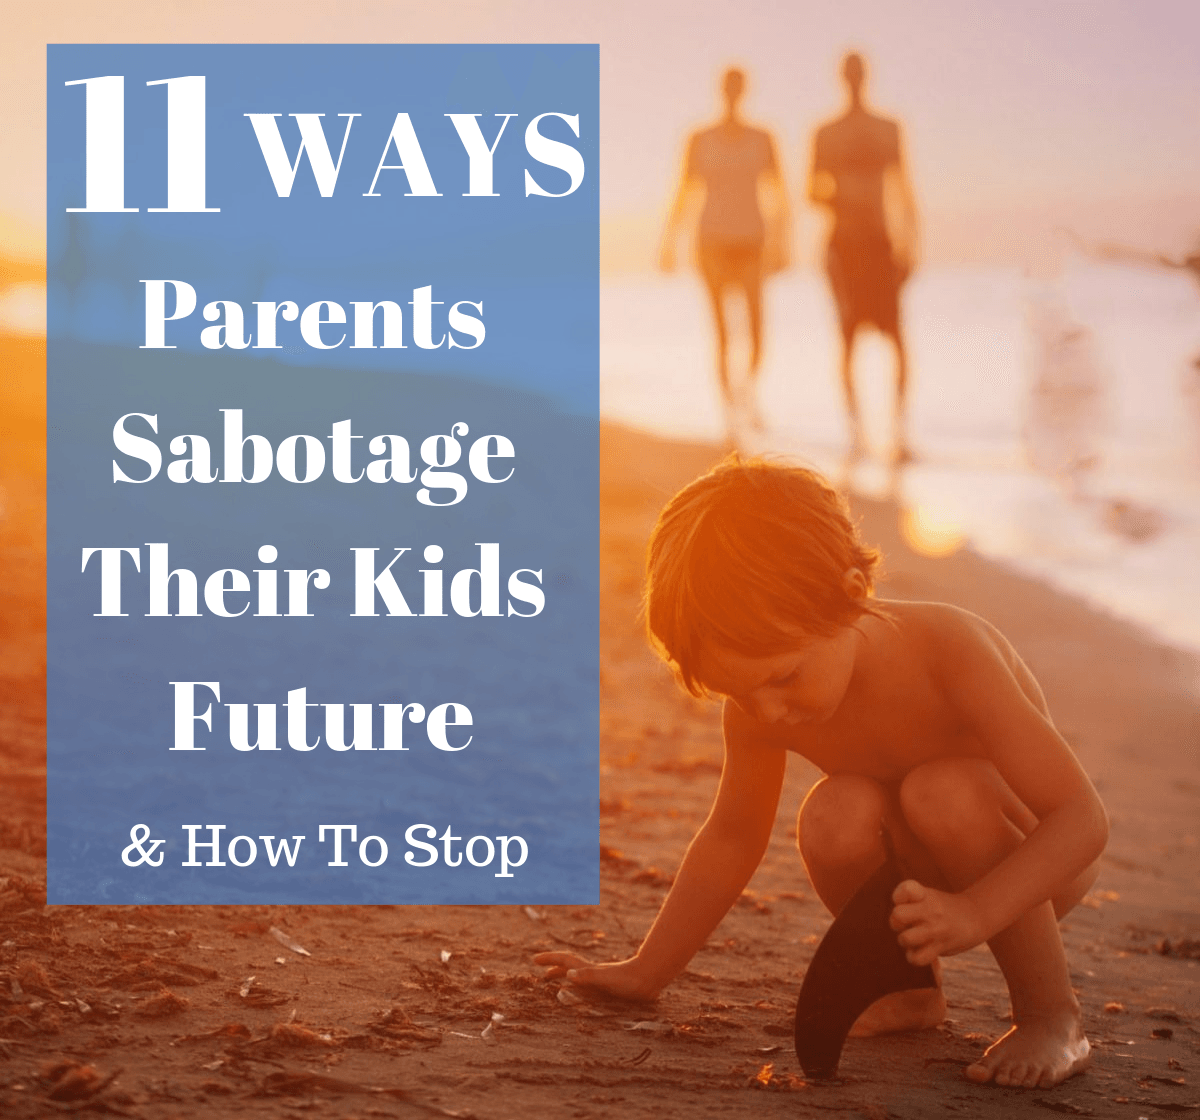 Eleven Ways Parents Sabotage Their Kids' Future & How To Stop